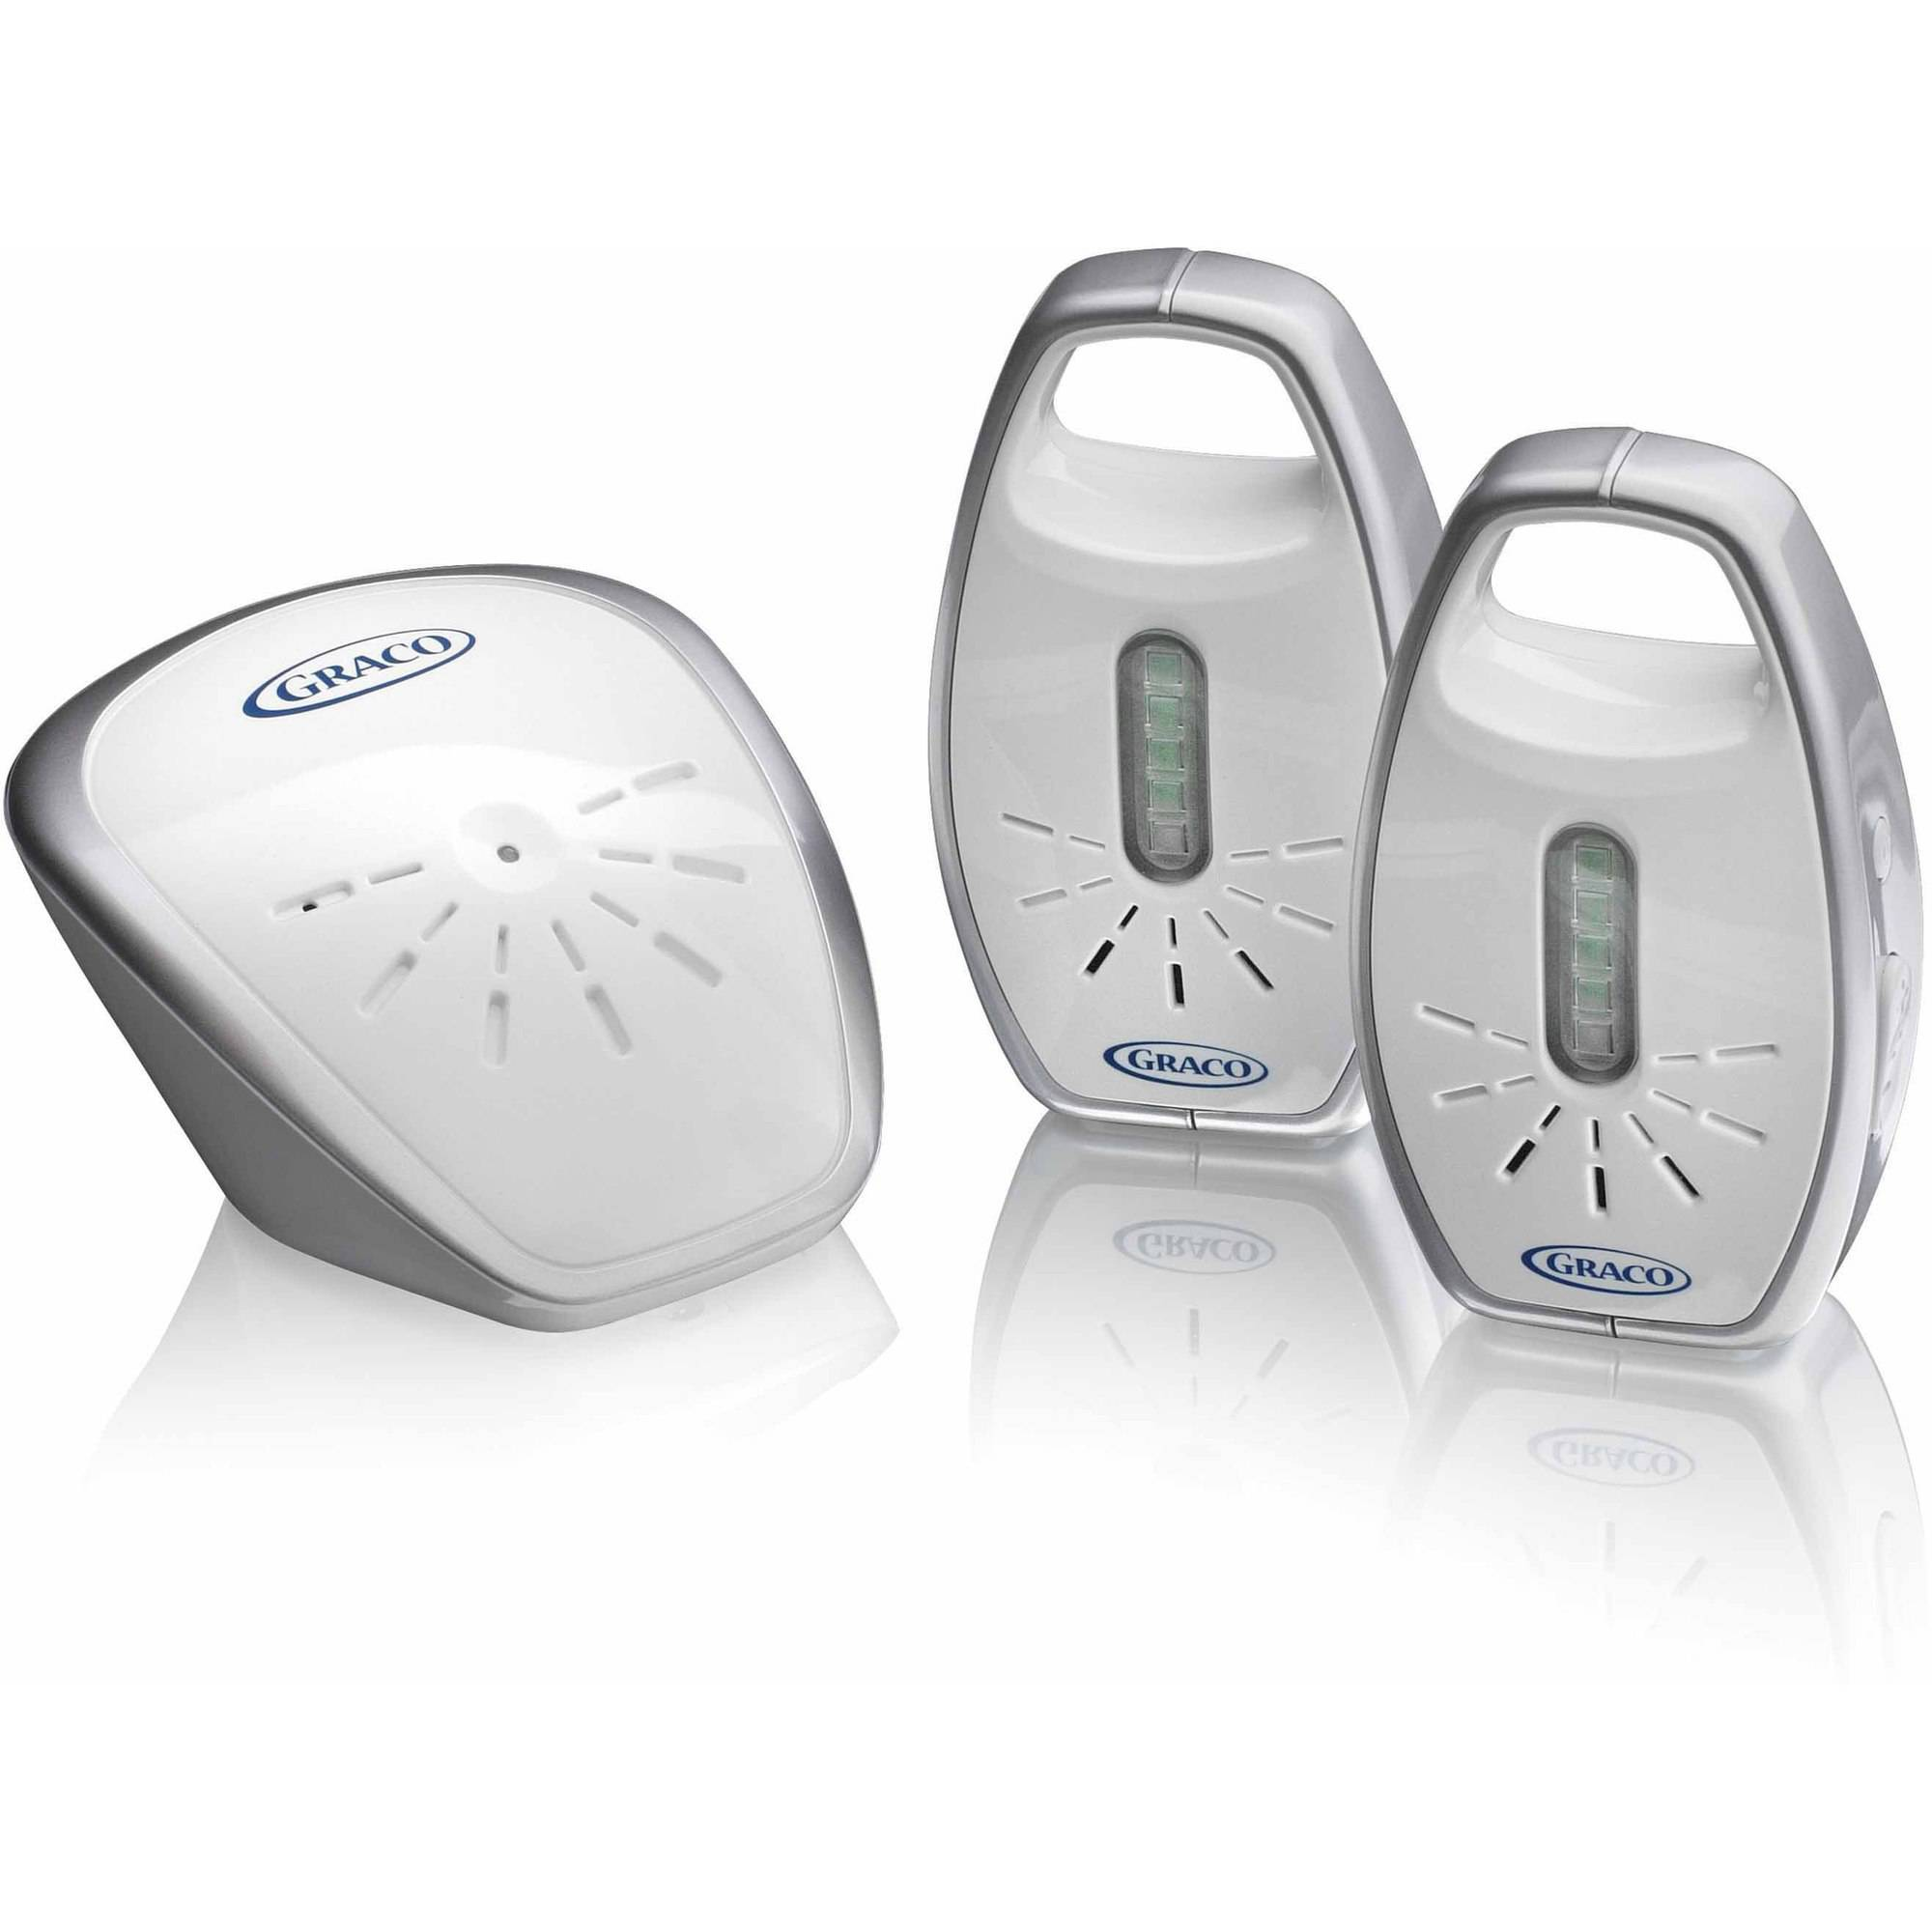 Graco Secure Coverage Digital Audio Baby Monitor, 2 Parent Units